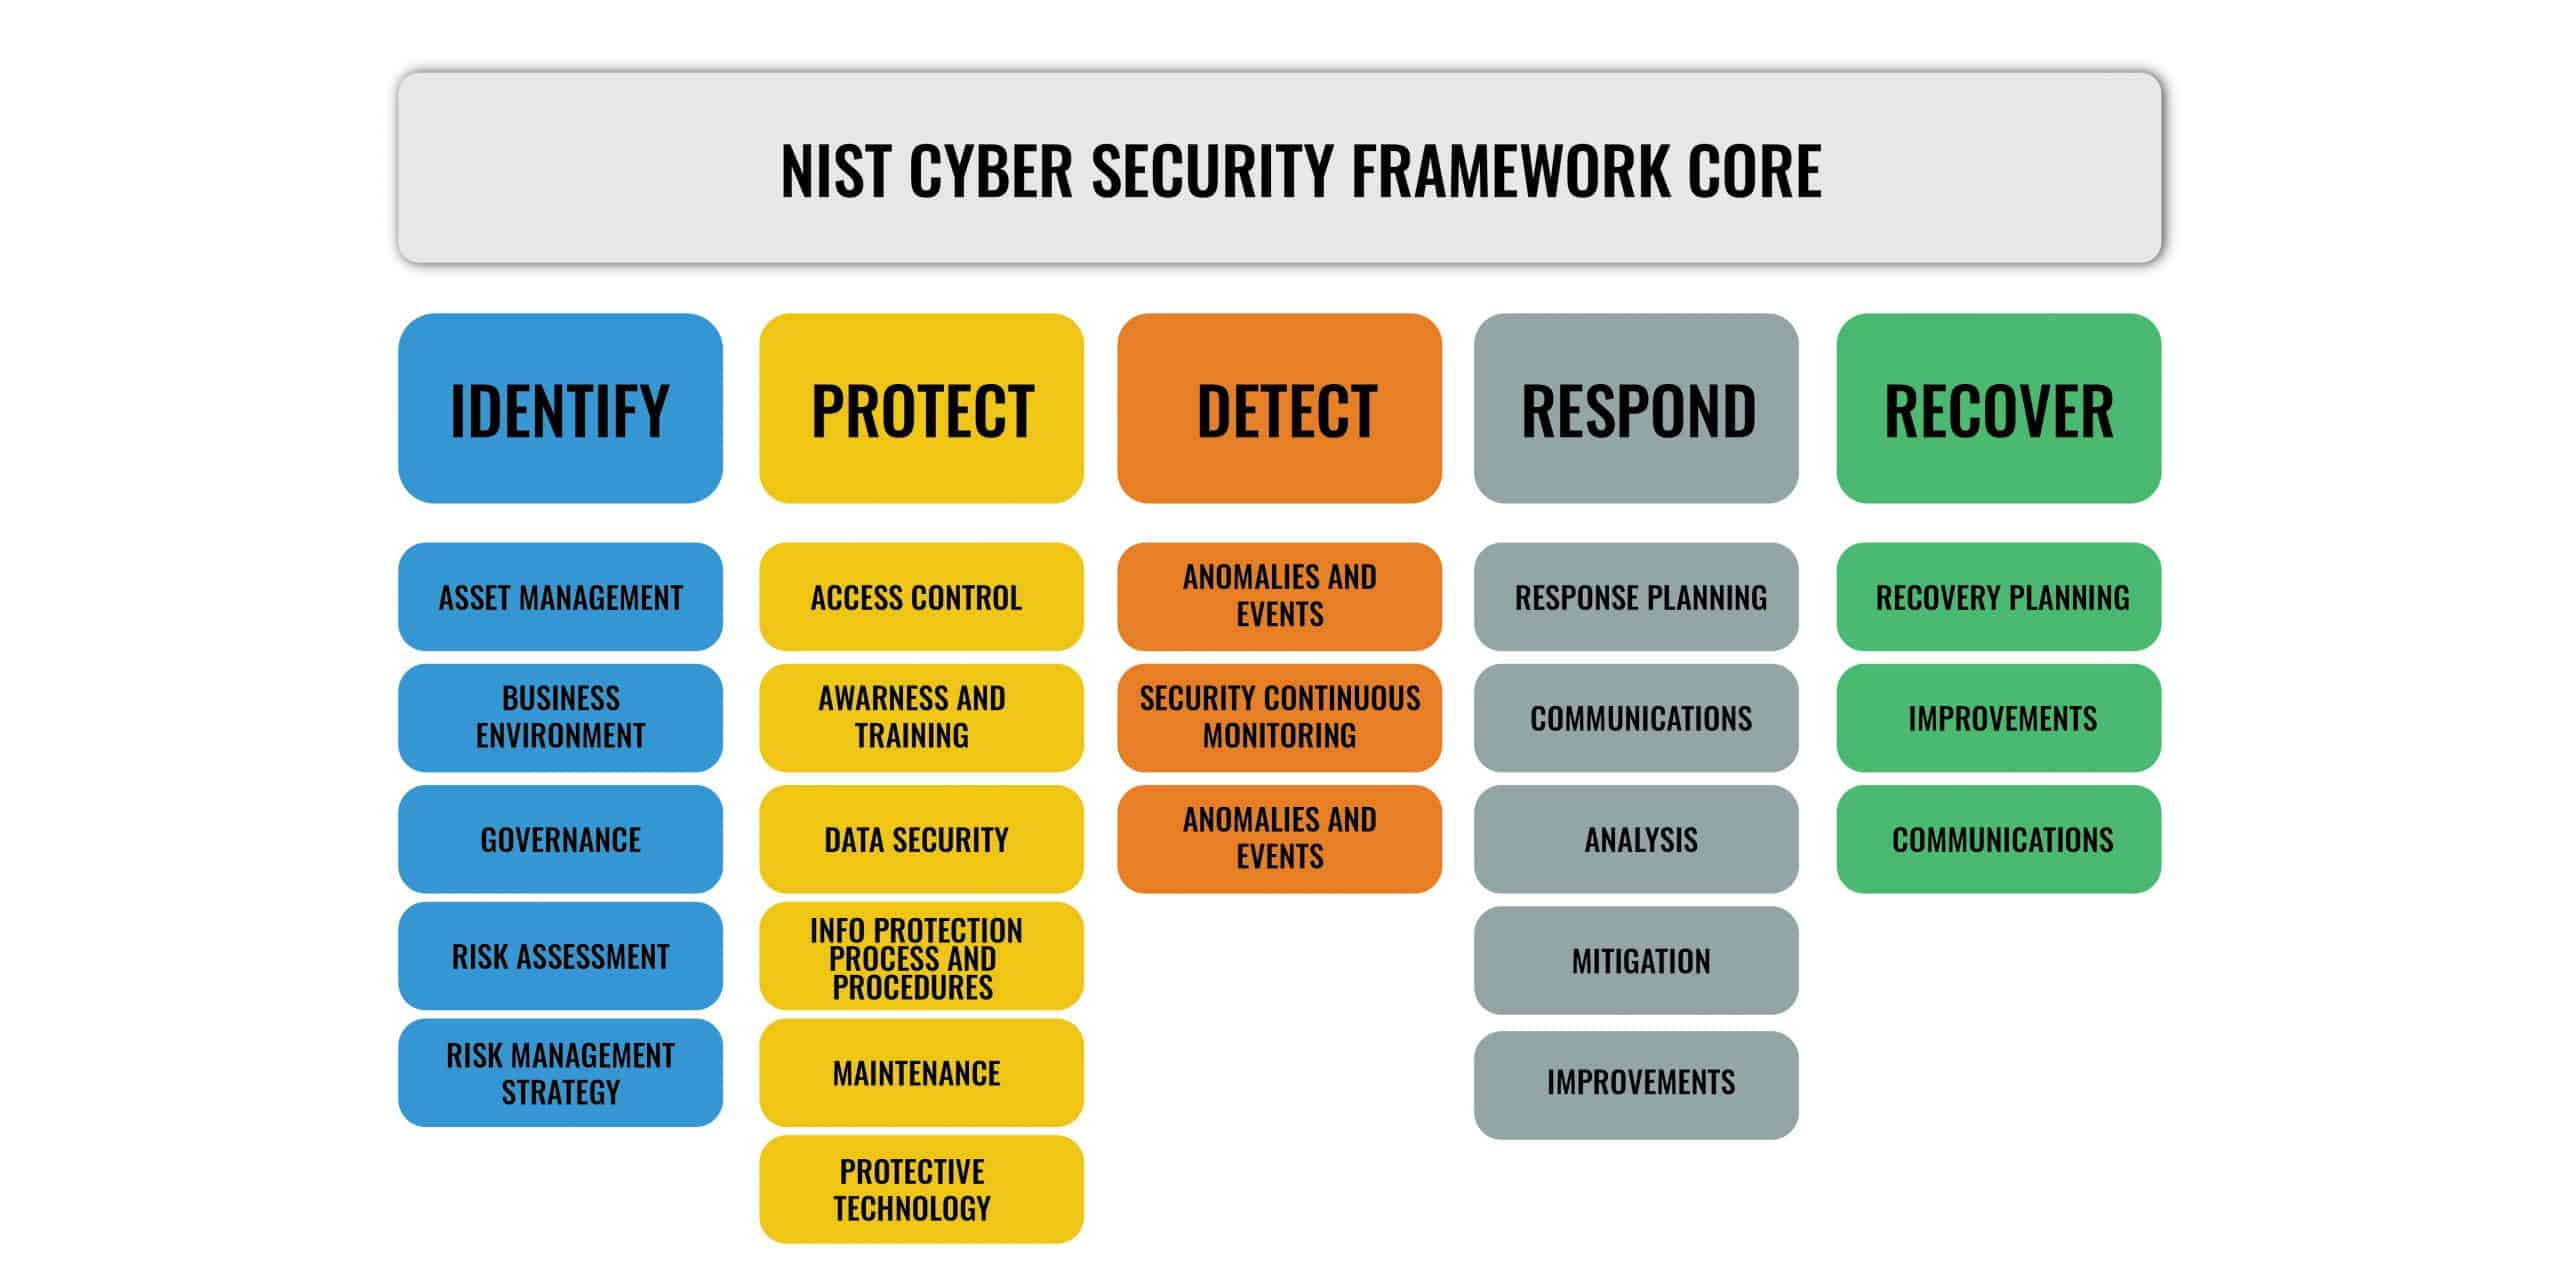 The five functions of the NIST Cybersecurity Framework Core